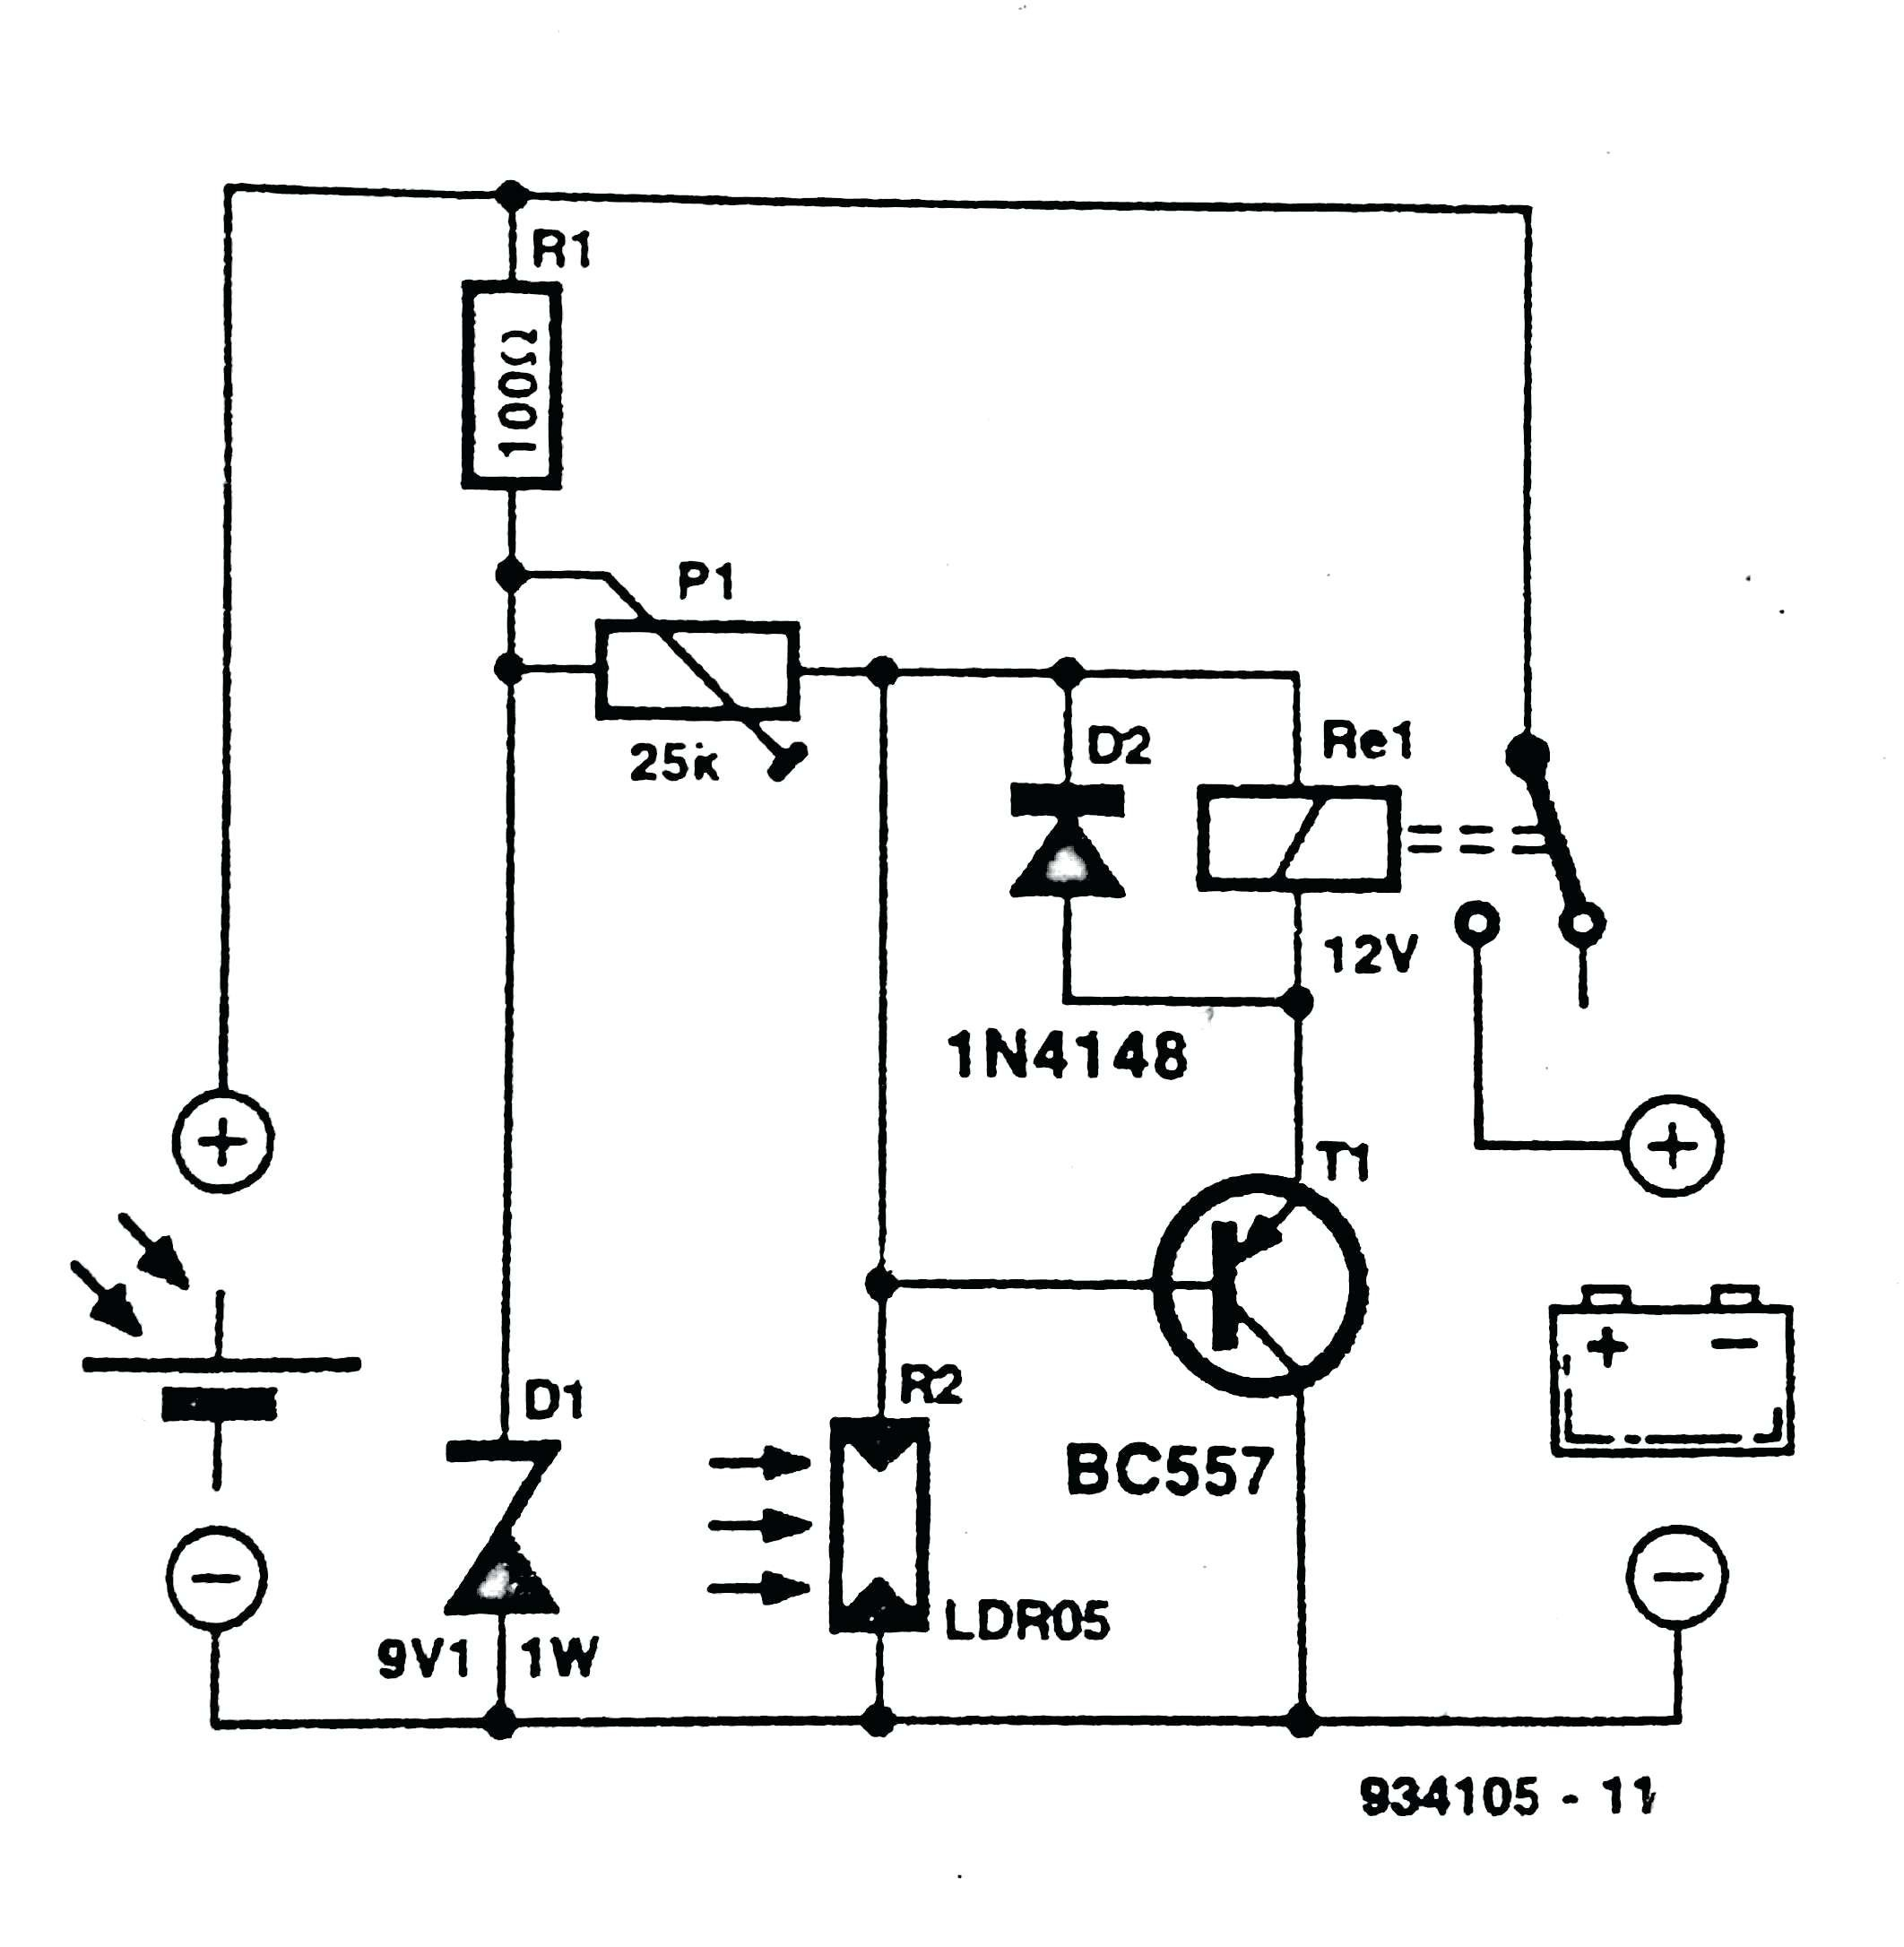 Fronius Inverter Wiring Diagram Apktodownload